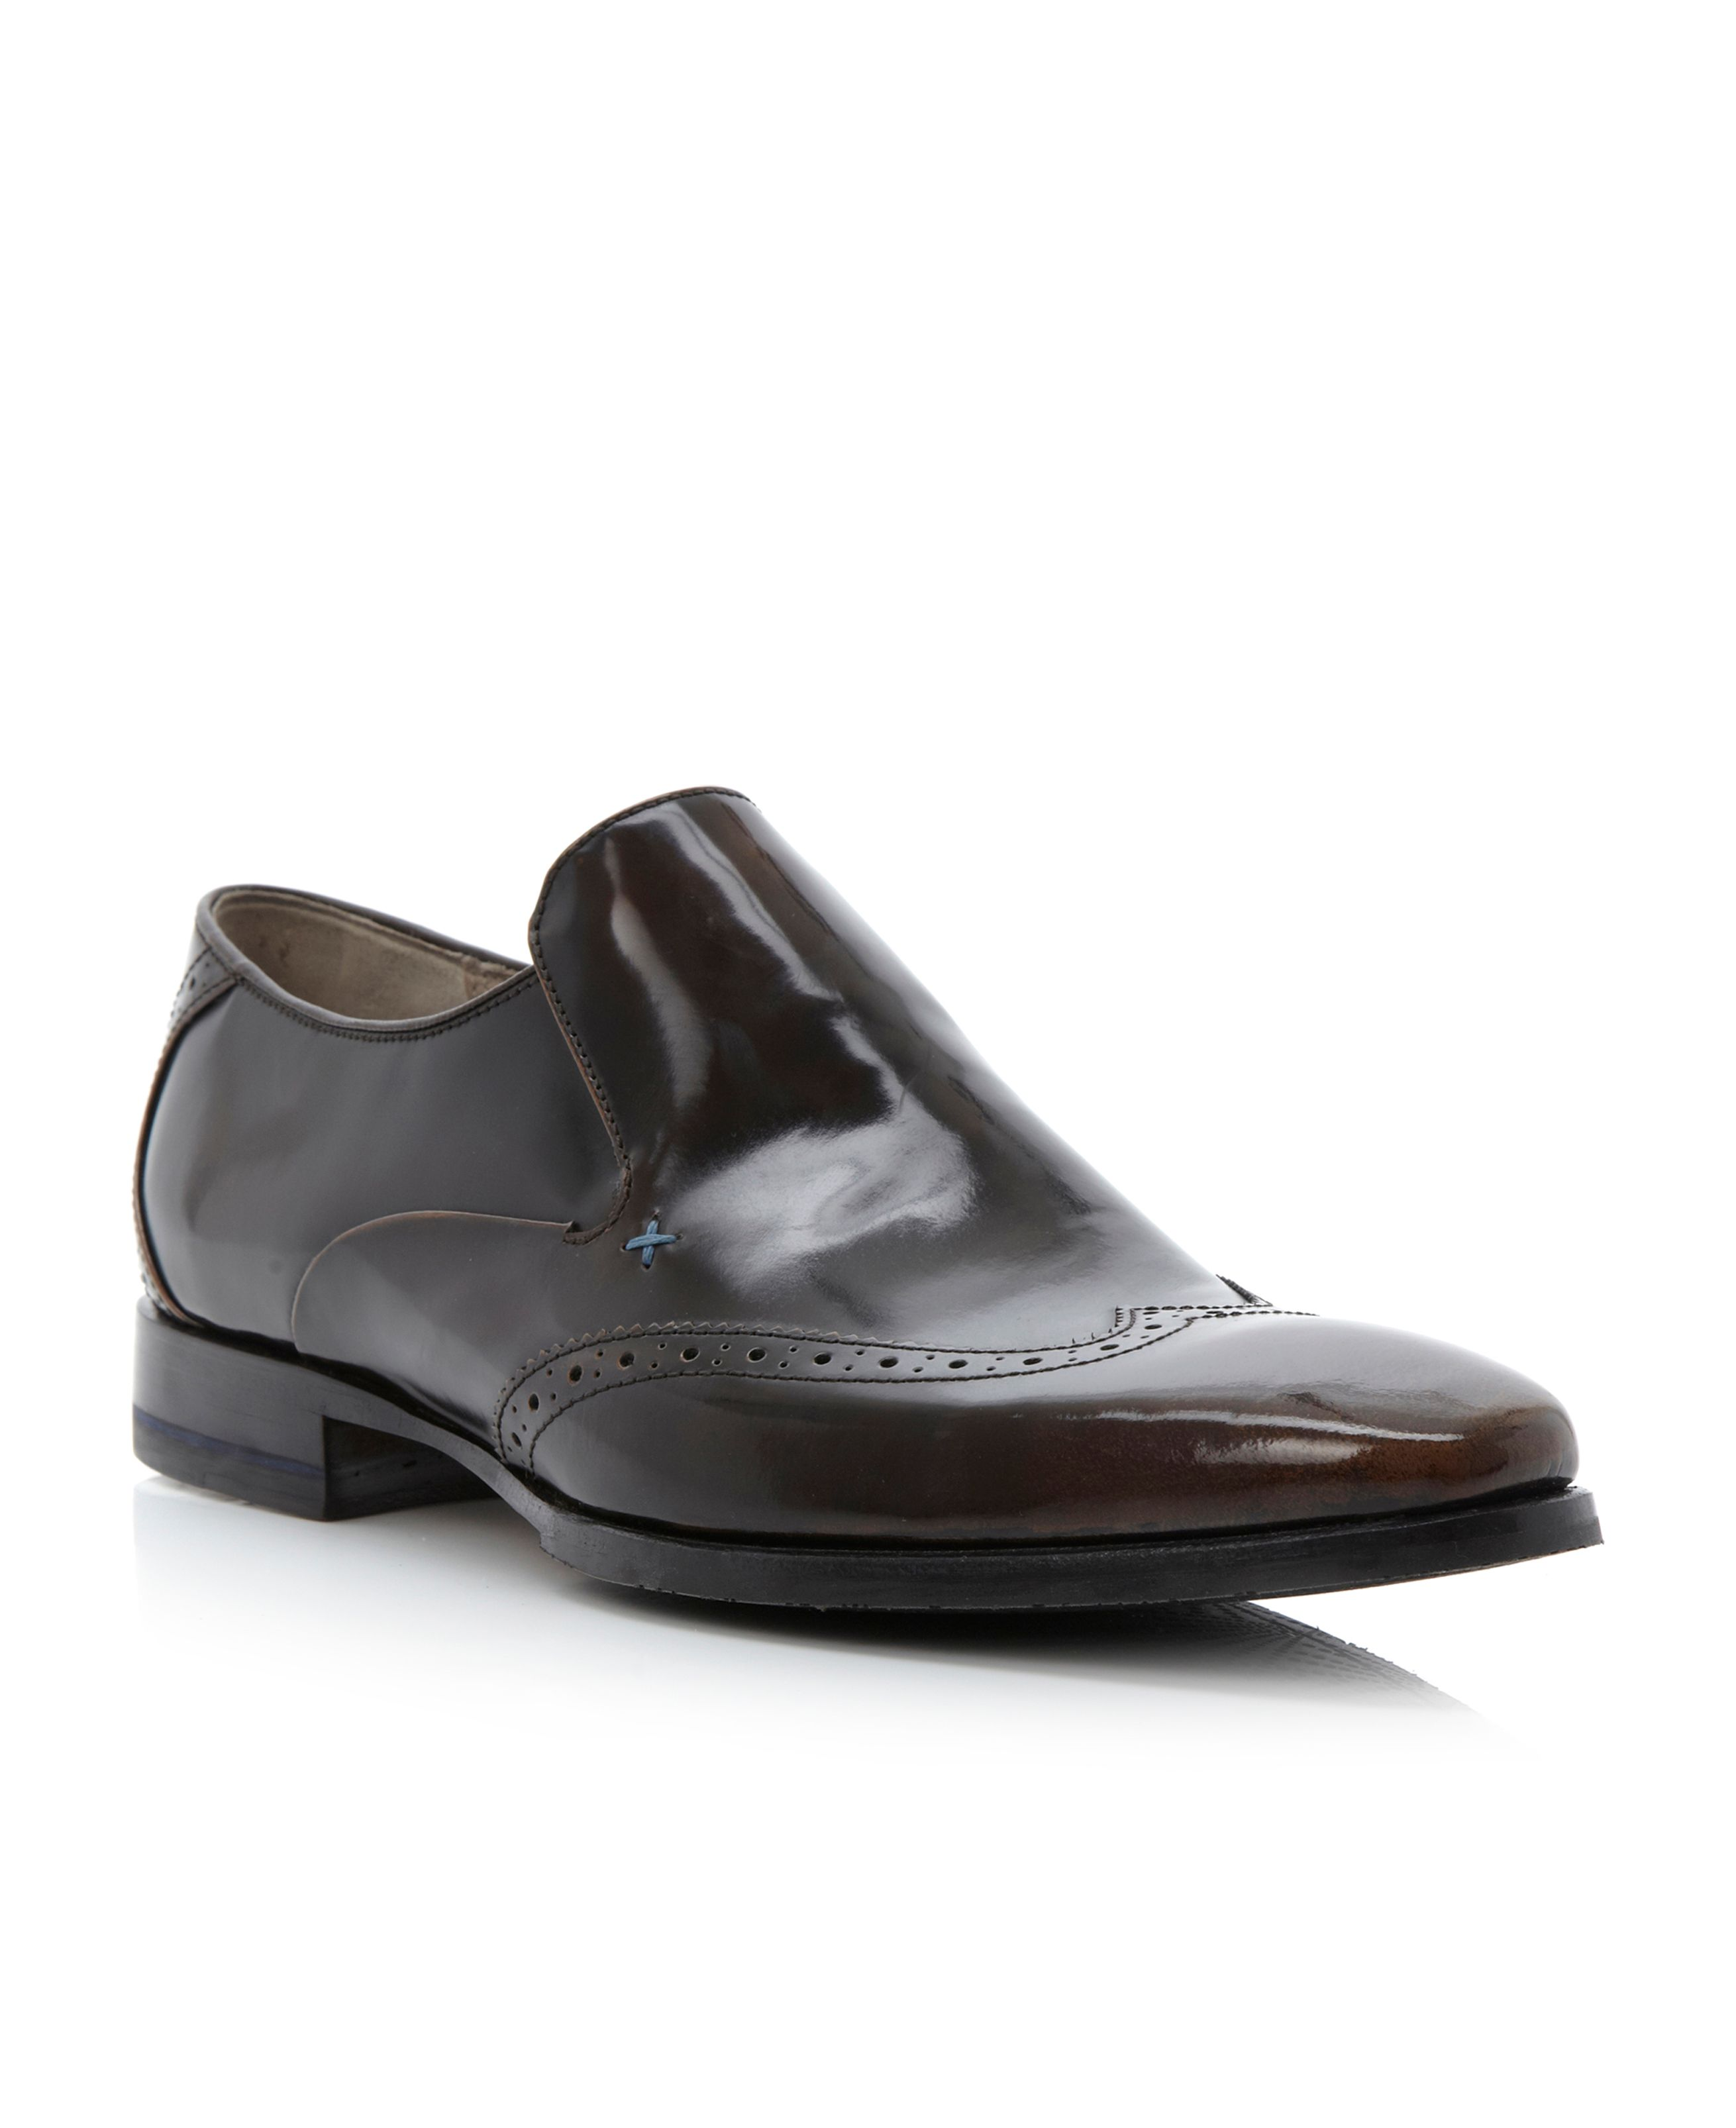 Bacton-wingtip brogue slip on